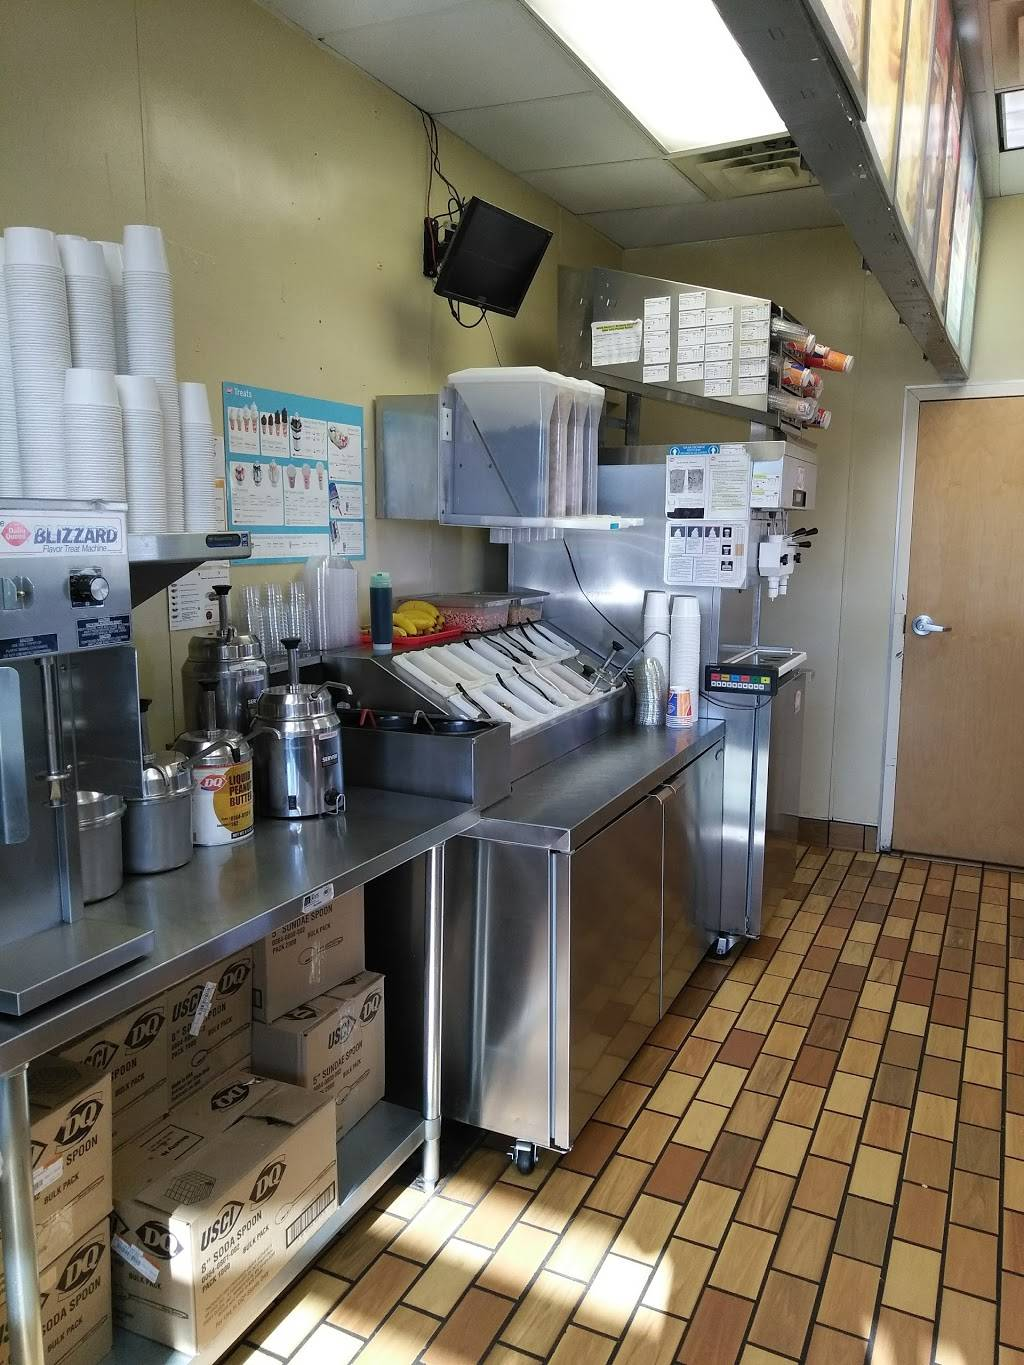 Dairy Queen Grill & Chill - restaurant  | Photo 5 of 7 | Address: 6655 Cahill Ave, Inver Grove Heights, MN 55076, USA | Phone: (651) 455-0339